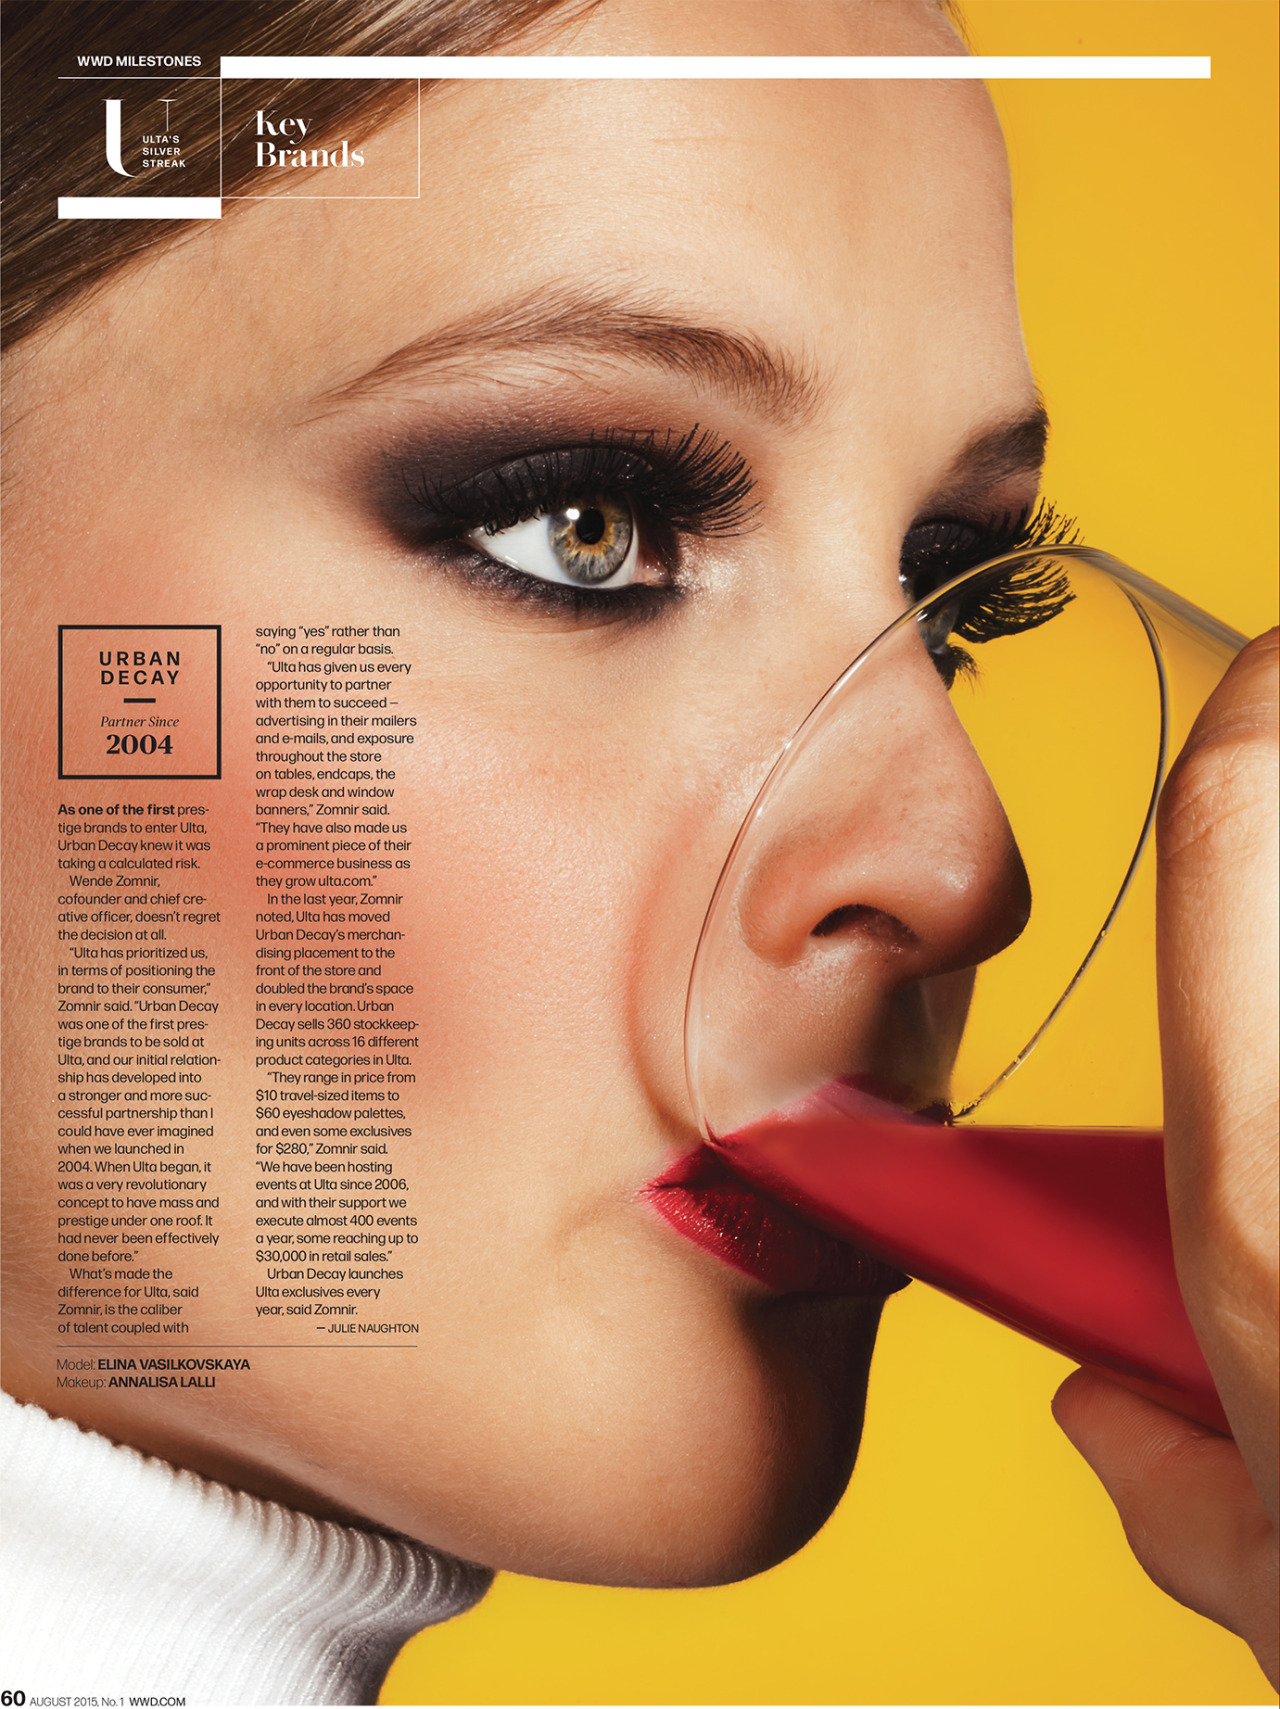 URBAN DECAY FOR    WWD MAGAZINE  (2015)